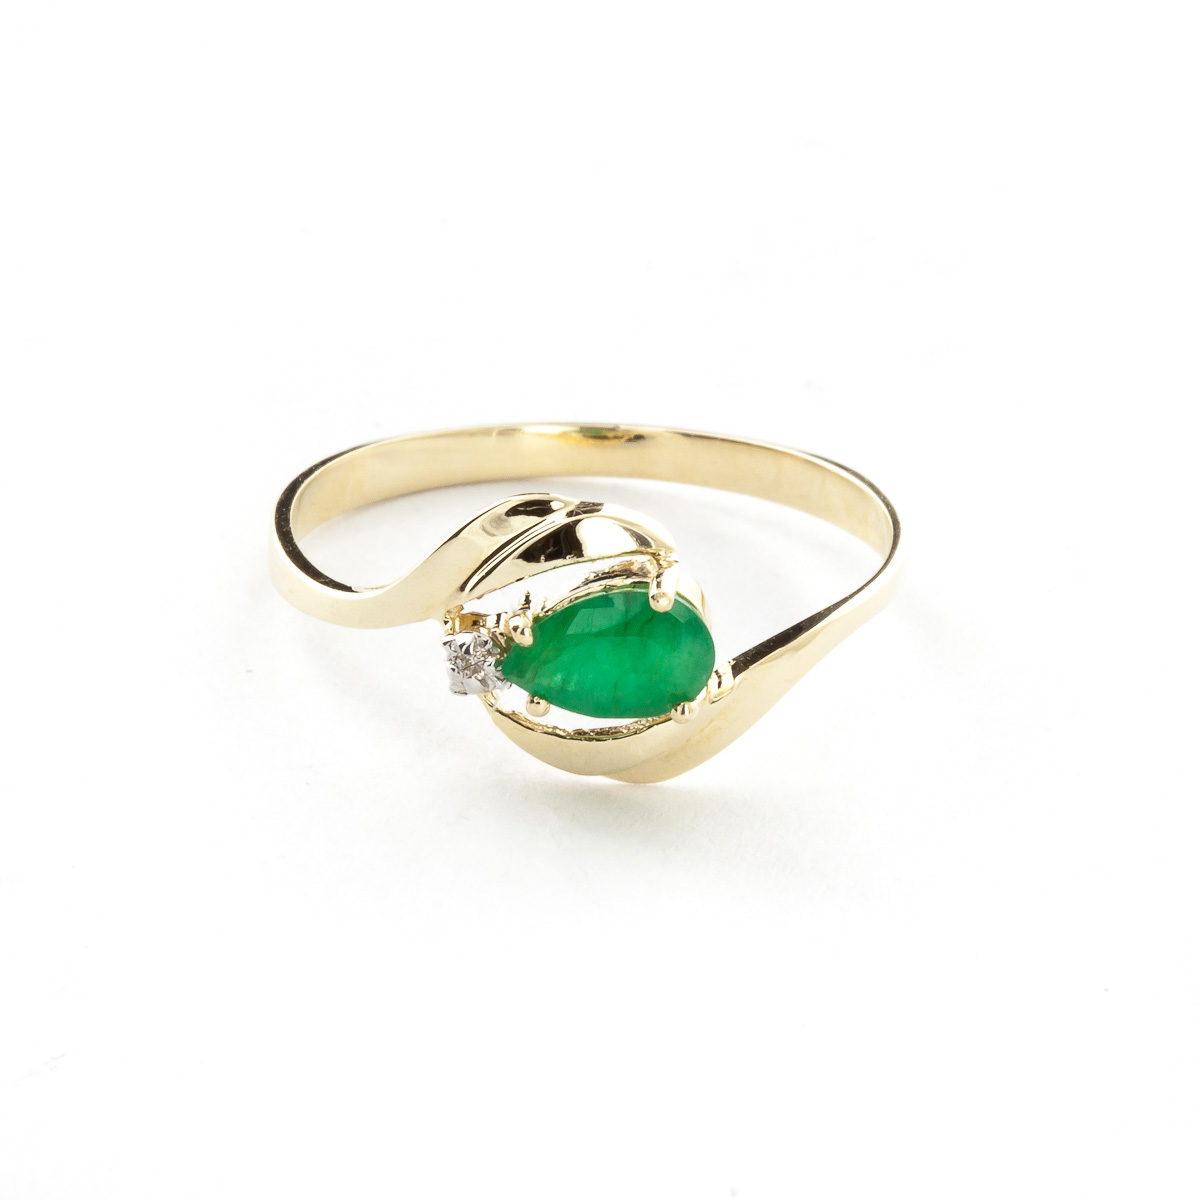 Emerald & Diamond Flare Ring in 9ct Gold